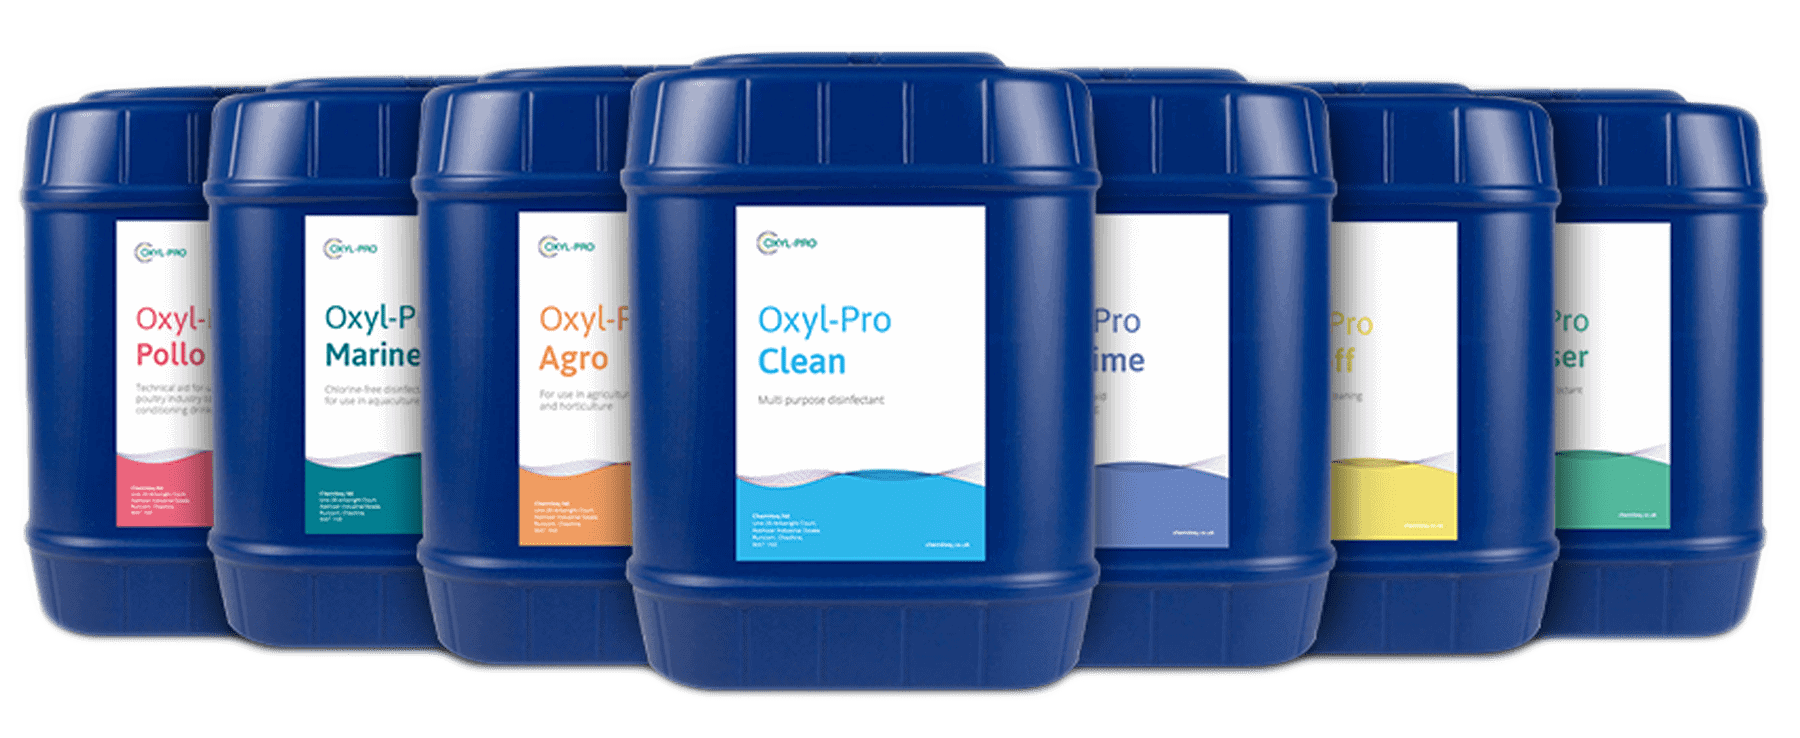 OXYL Pro Product